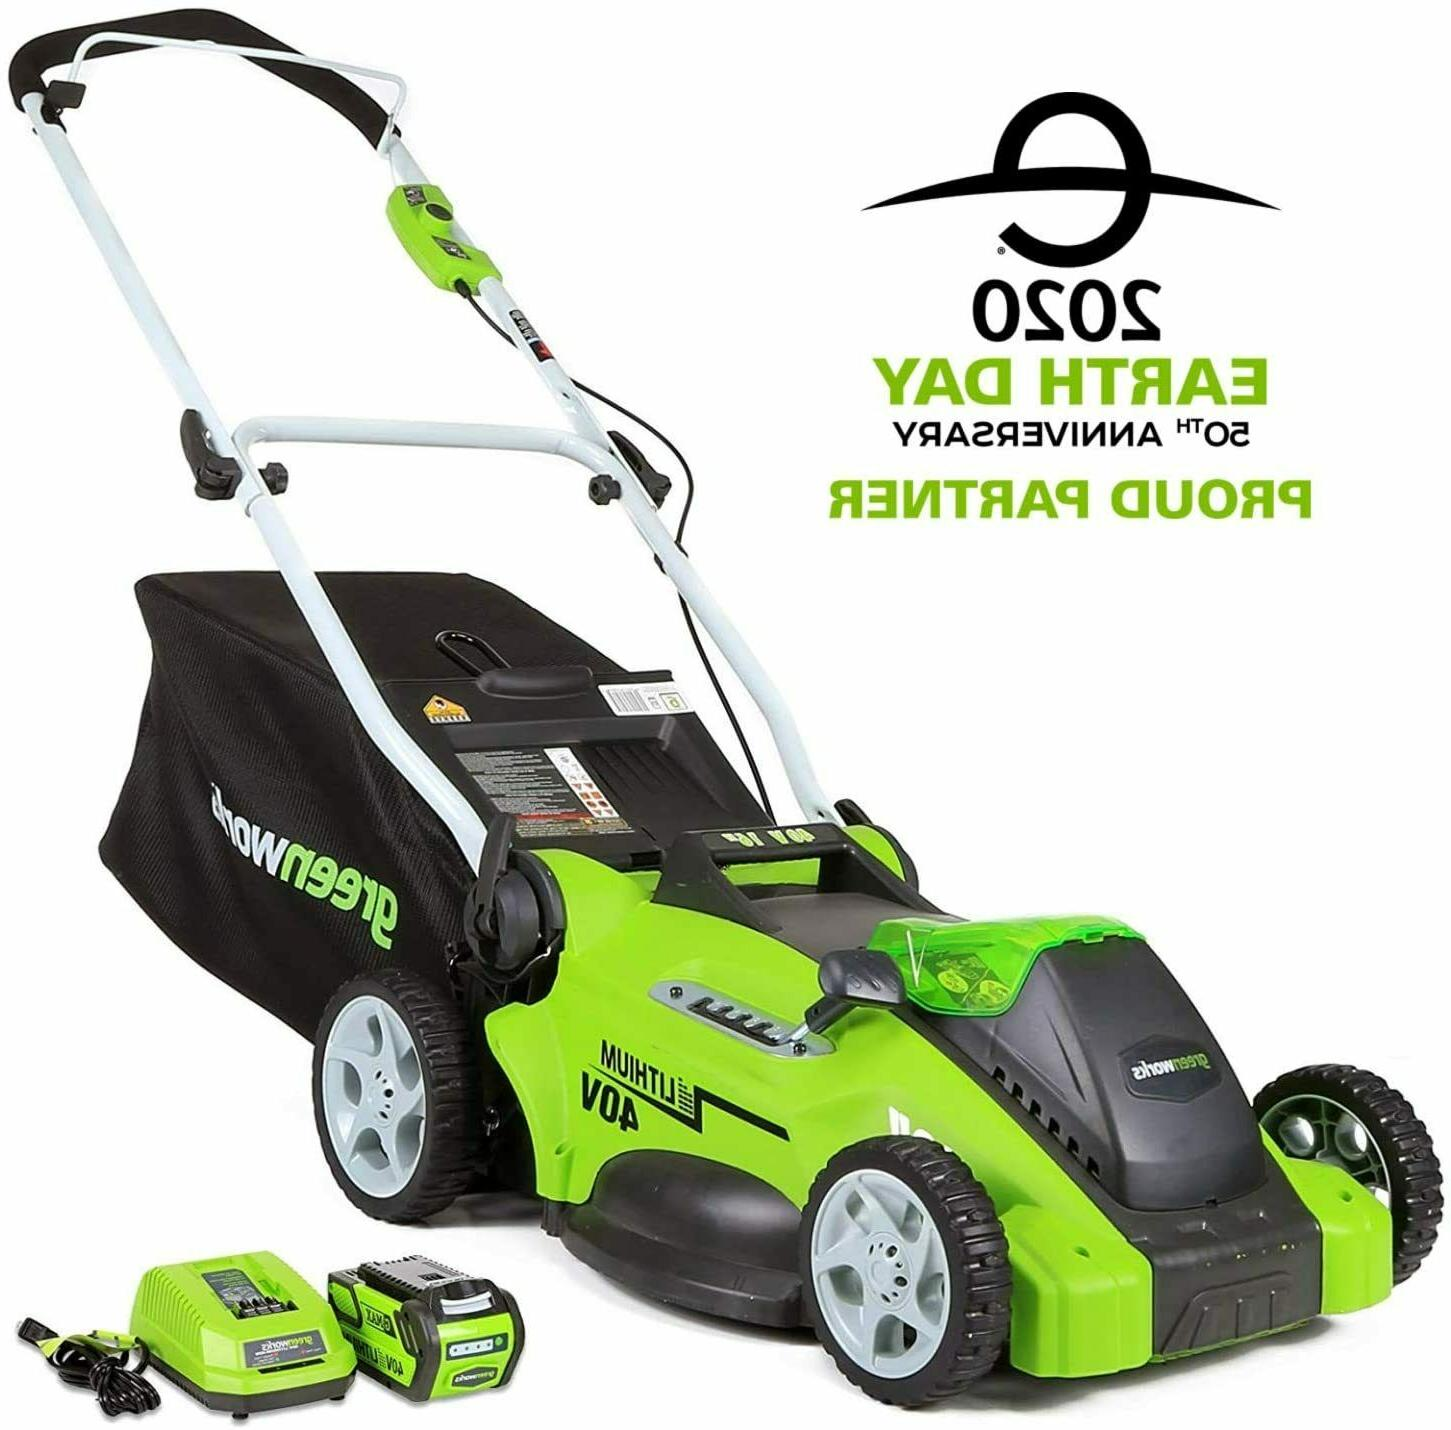 NEW Greenworks 16-Inch Cordless Lawn AH Battery